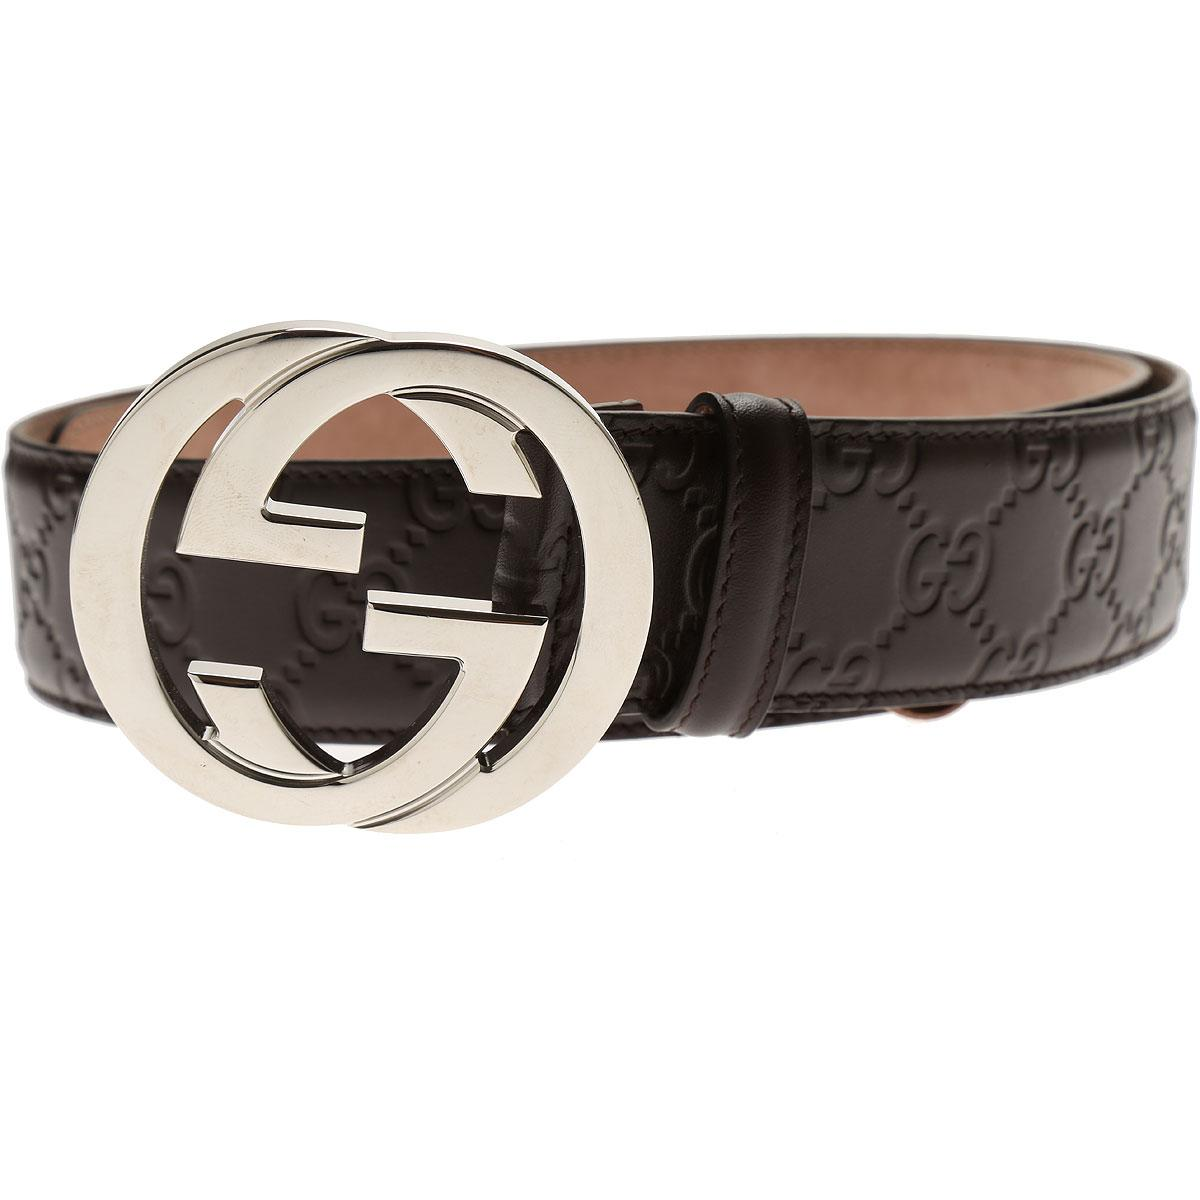 09aac3ee6d Gucci Mens Belts On Sale in Brown for Men - Lyst